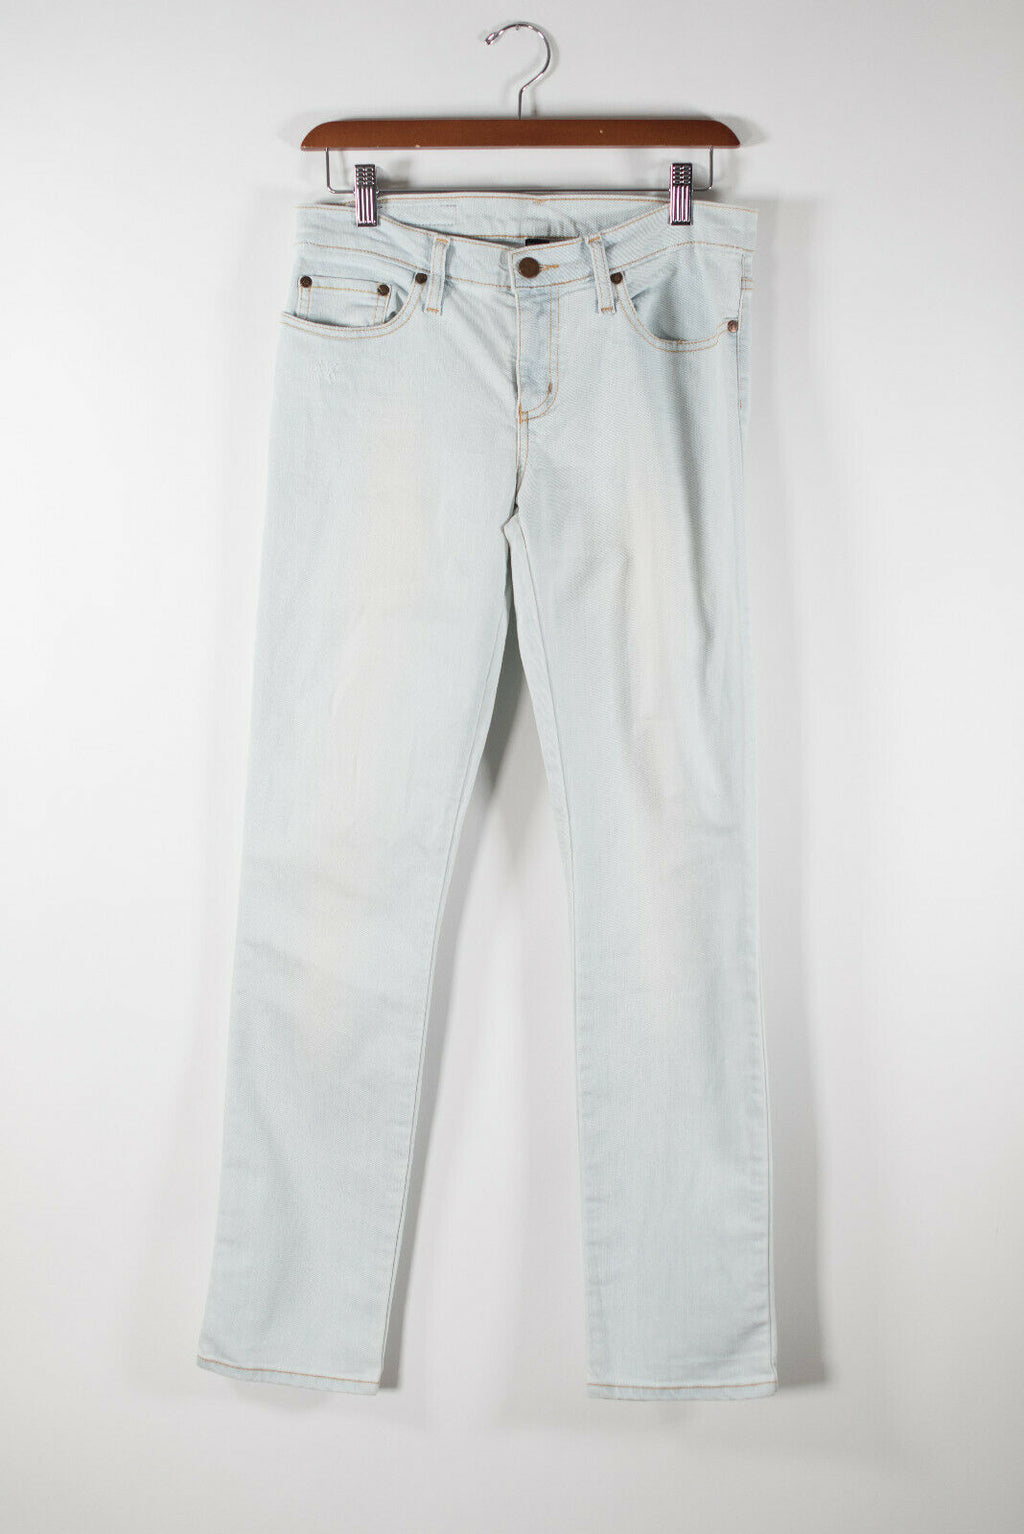 Nobody Womens Size 28 Light Blue Jeans Cult Ankle Skinny High Rise Slim Denim